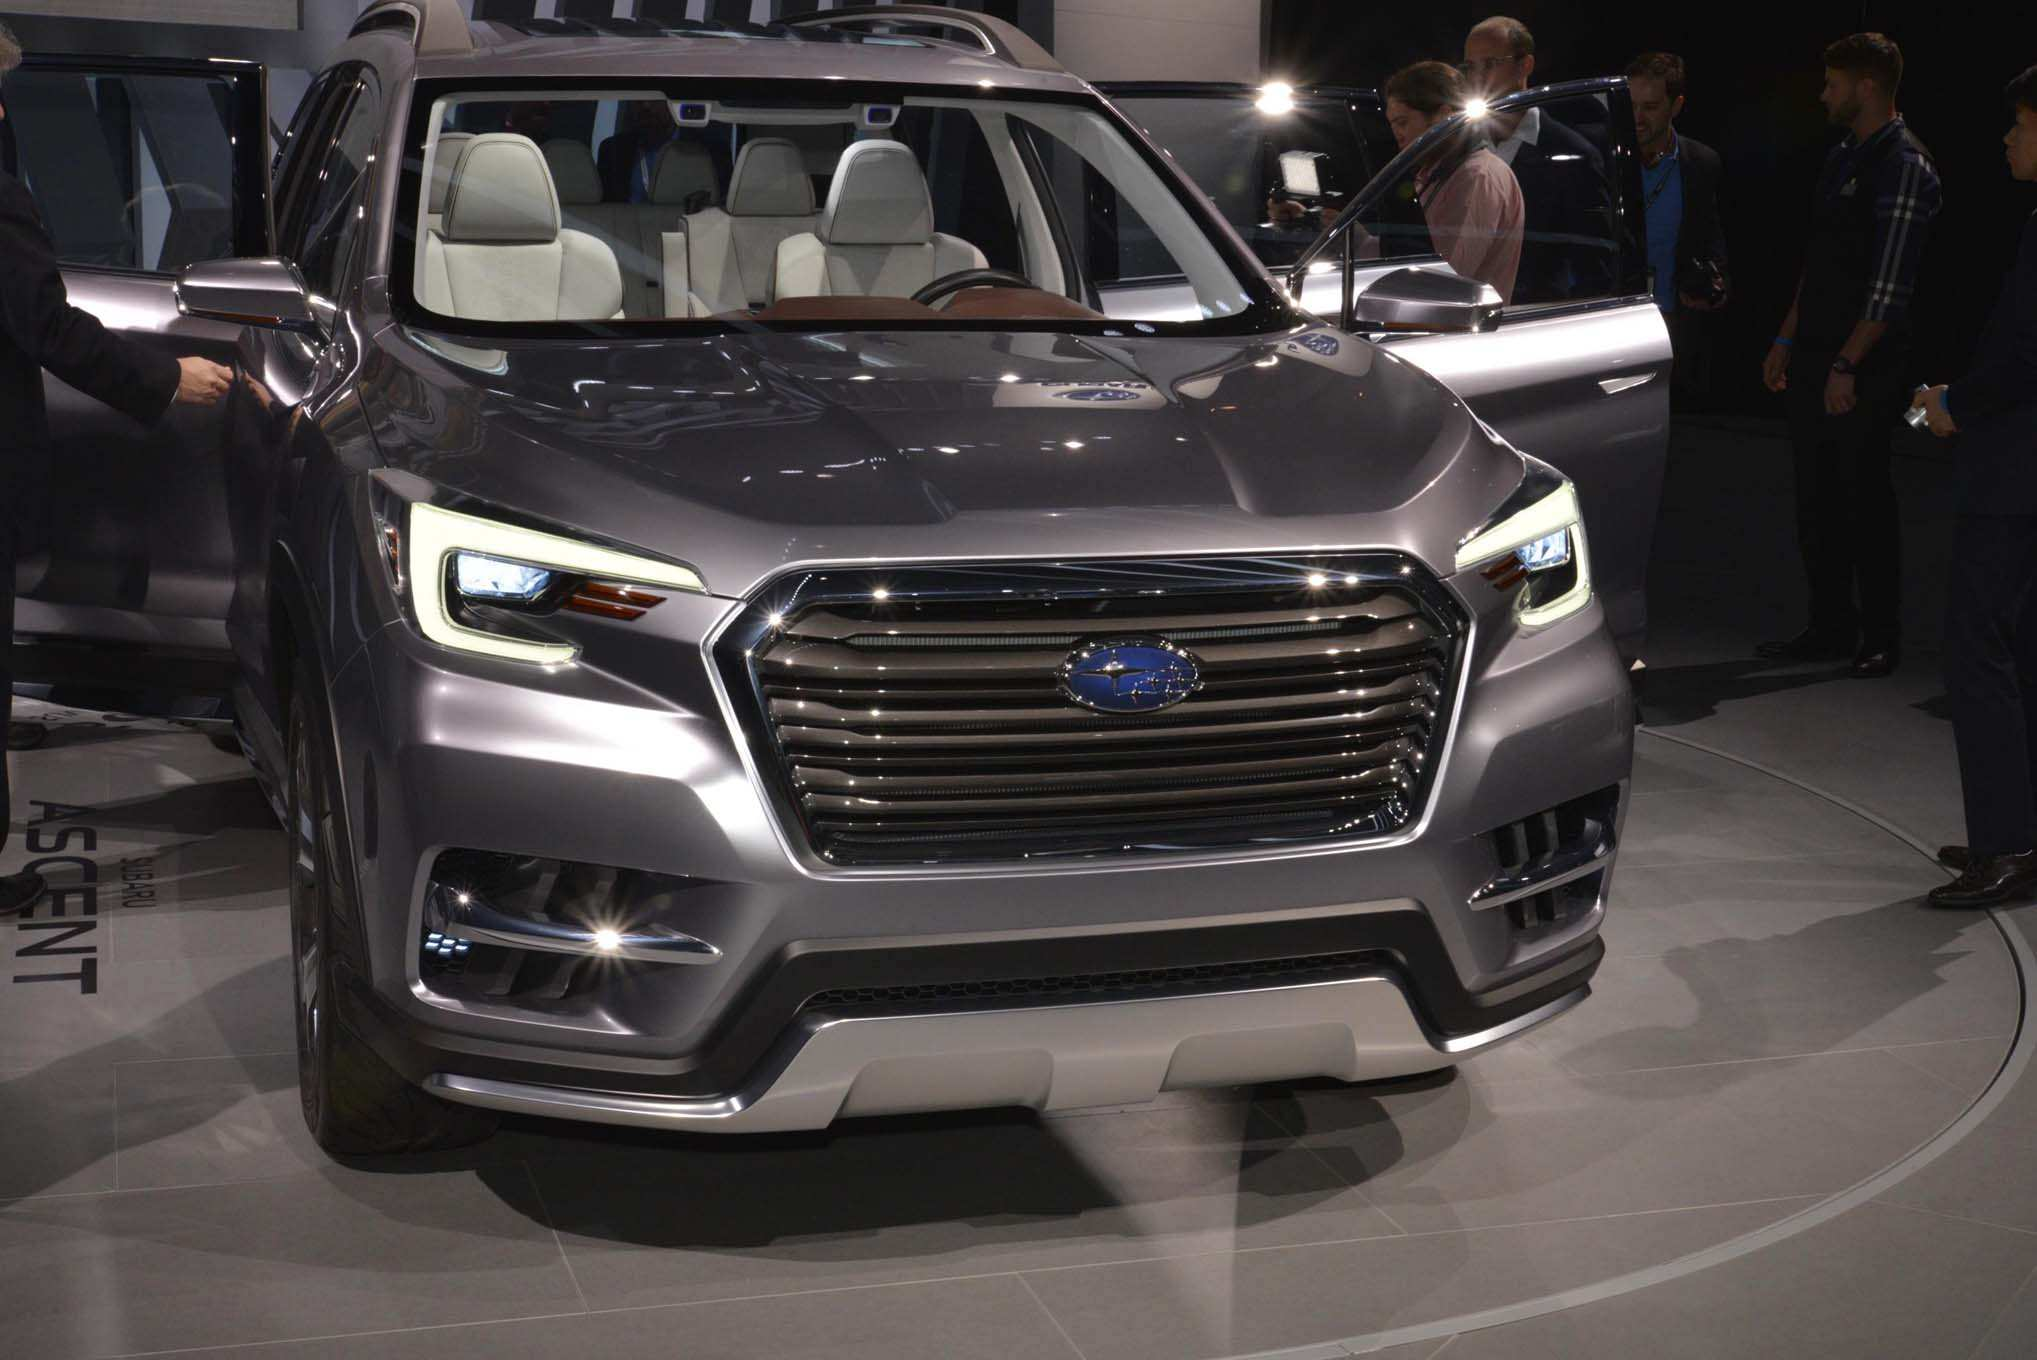 71 The Best Subaru Ascent 2019 Engine New Concept